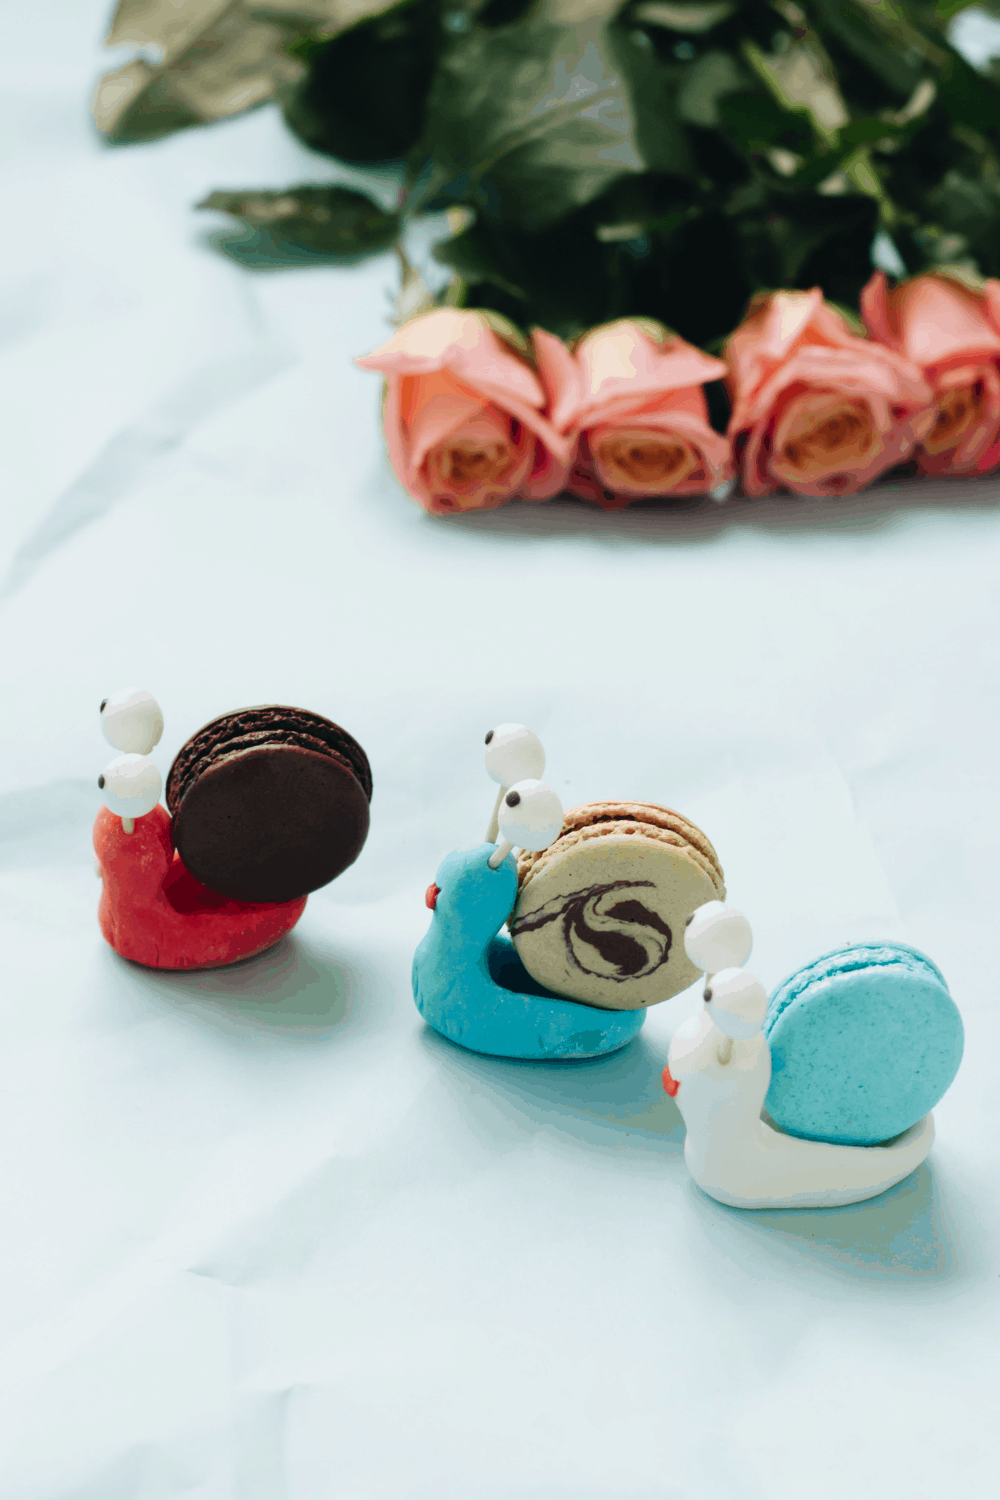 trio of snail macarons on a table to show a unique macaron decorating idea